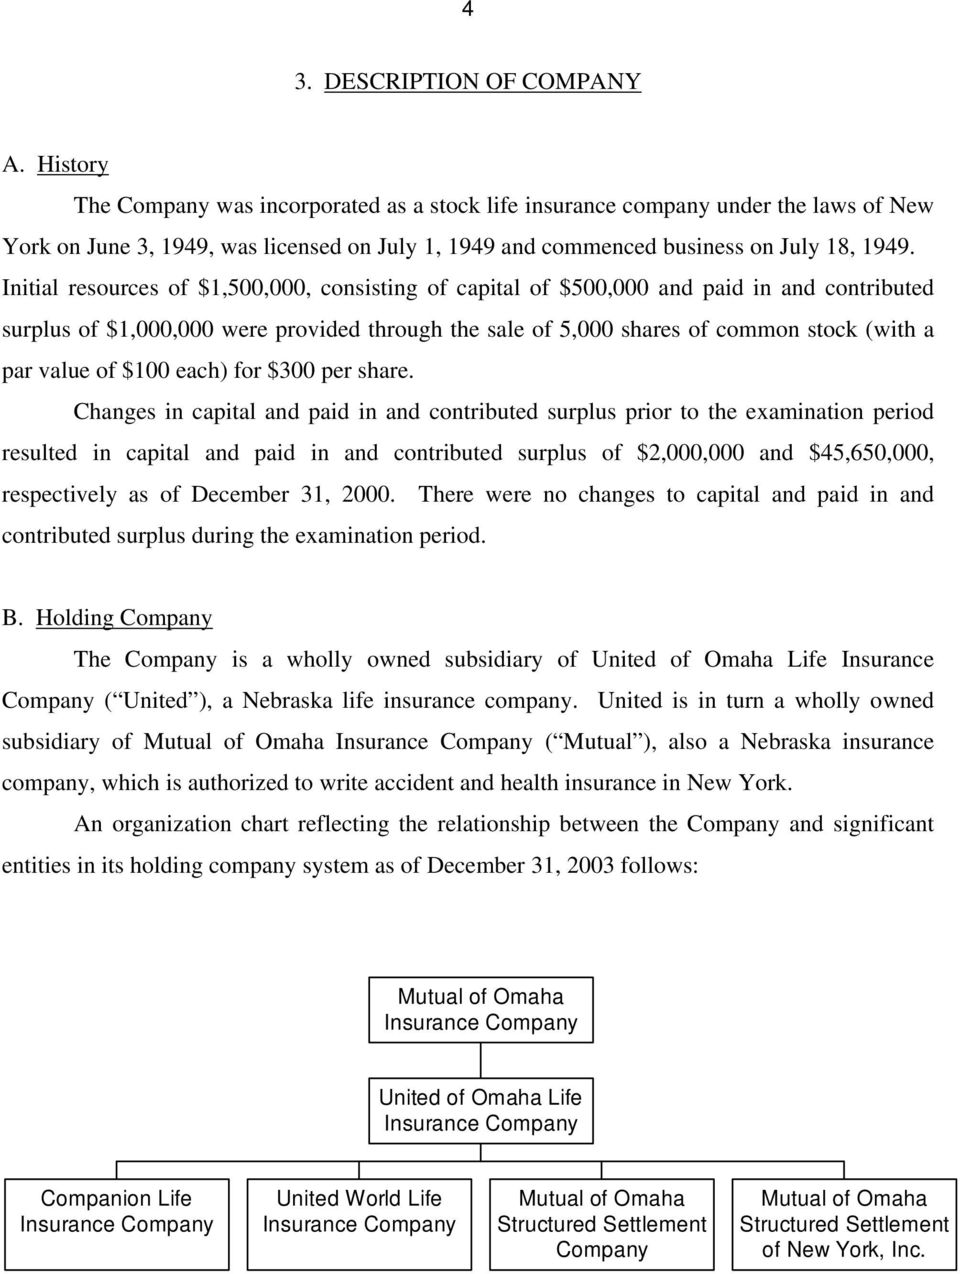 Initial resources of $1,500,000, consisting of capital of $500,000 and paid in and contributed surplus of $1,000,000 were provided through the sale of 5,000 shares of common stock (with a par value